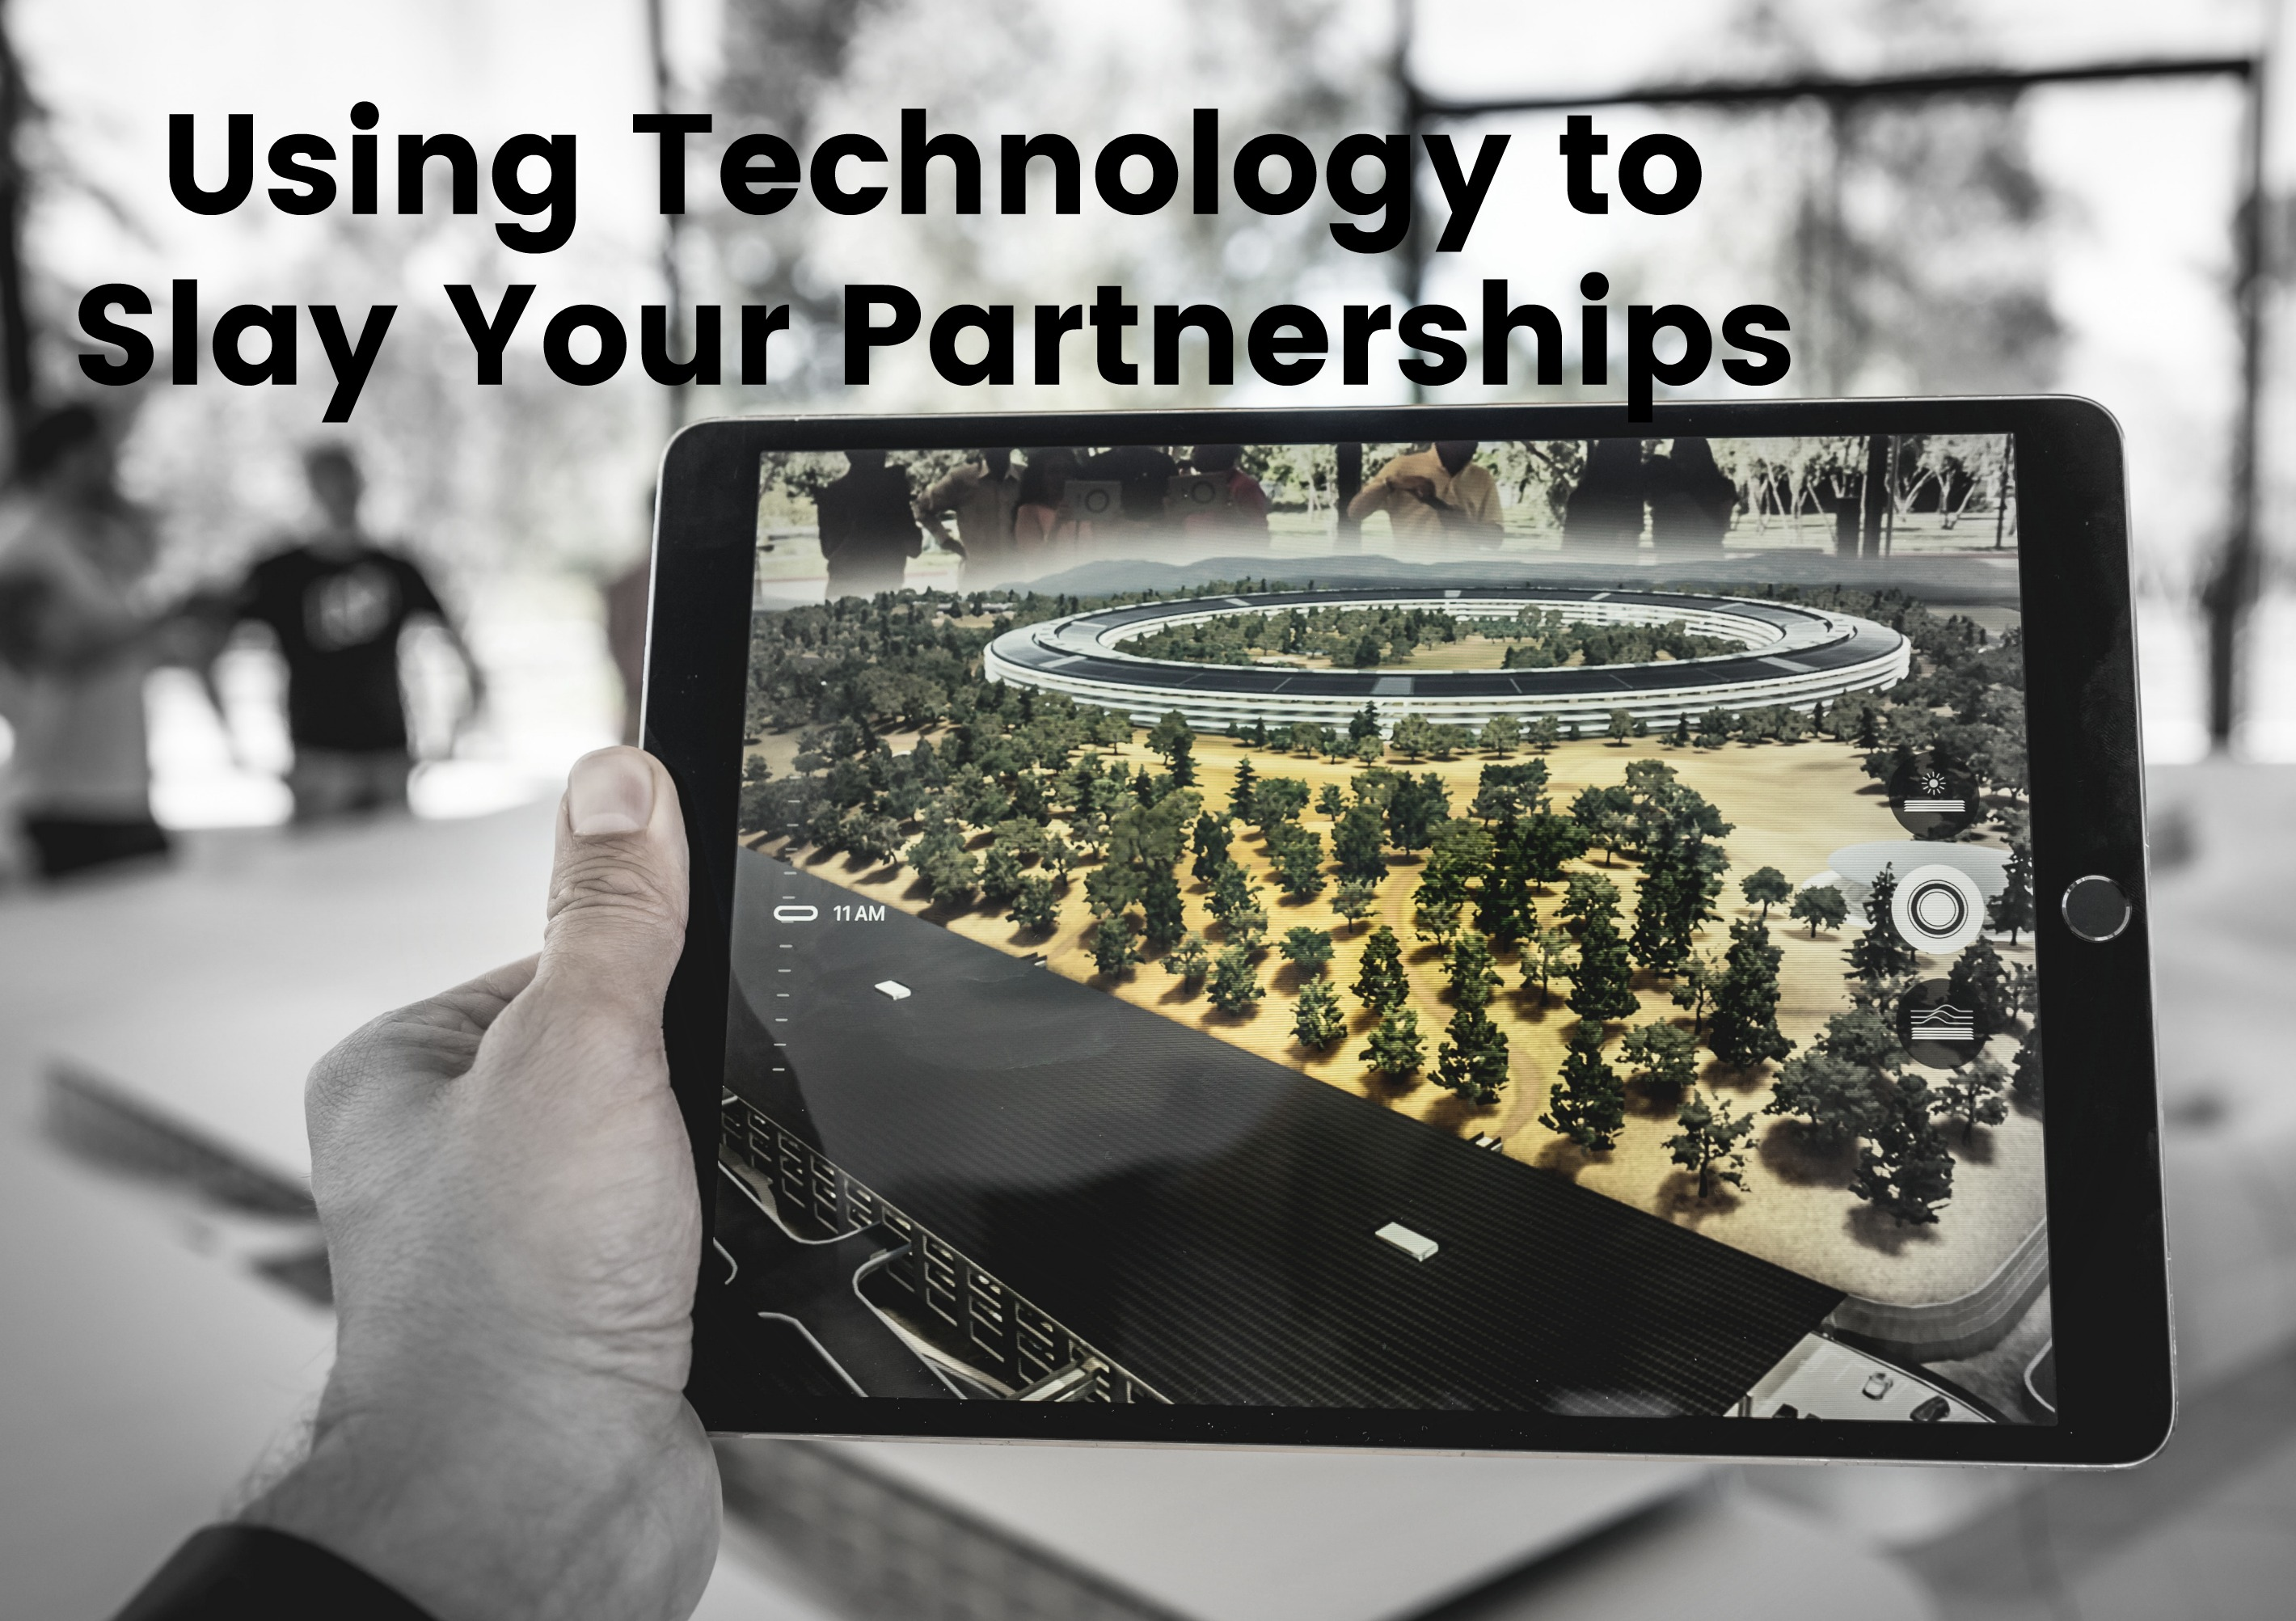 Using Technology to Slay Your Partnerships